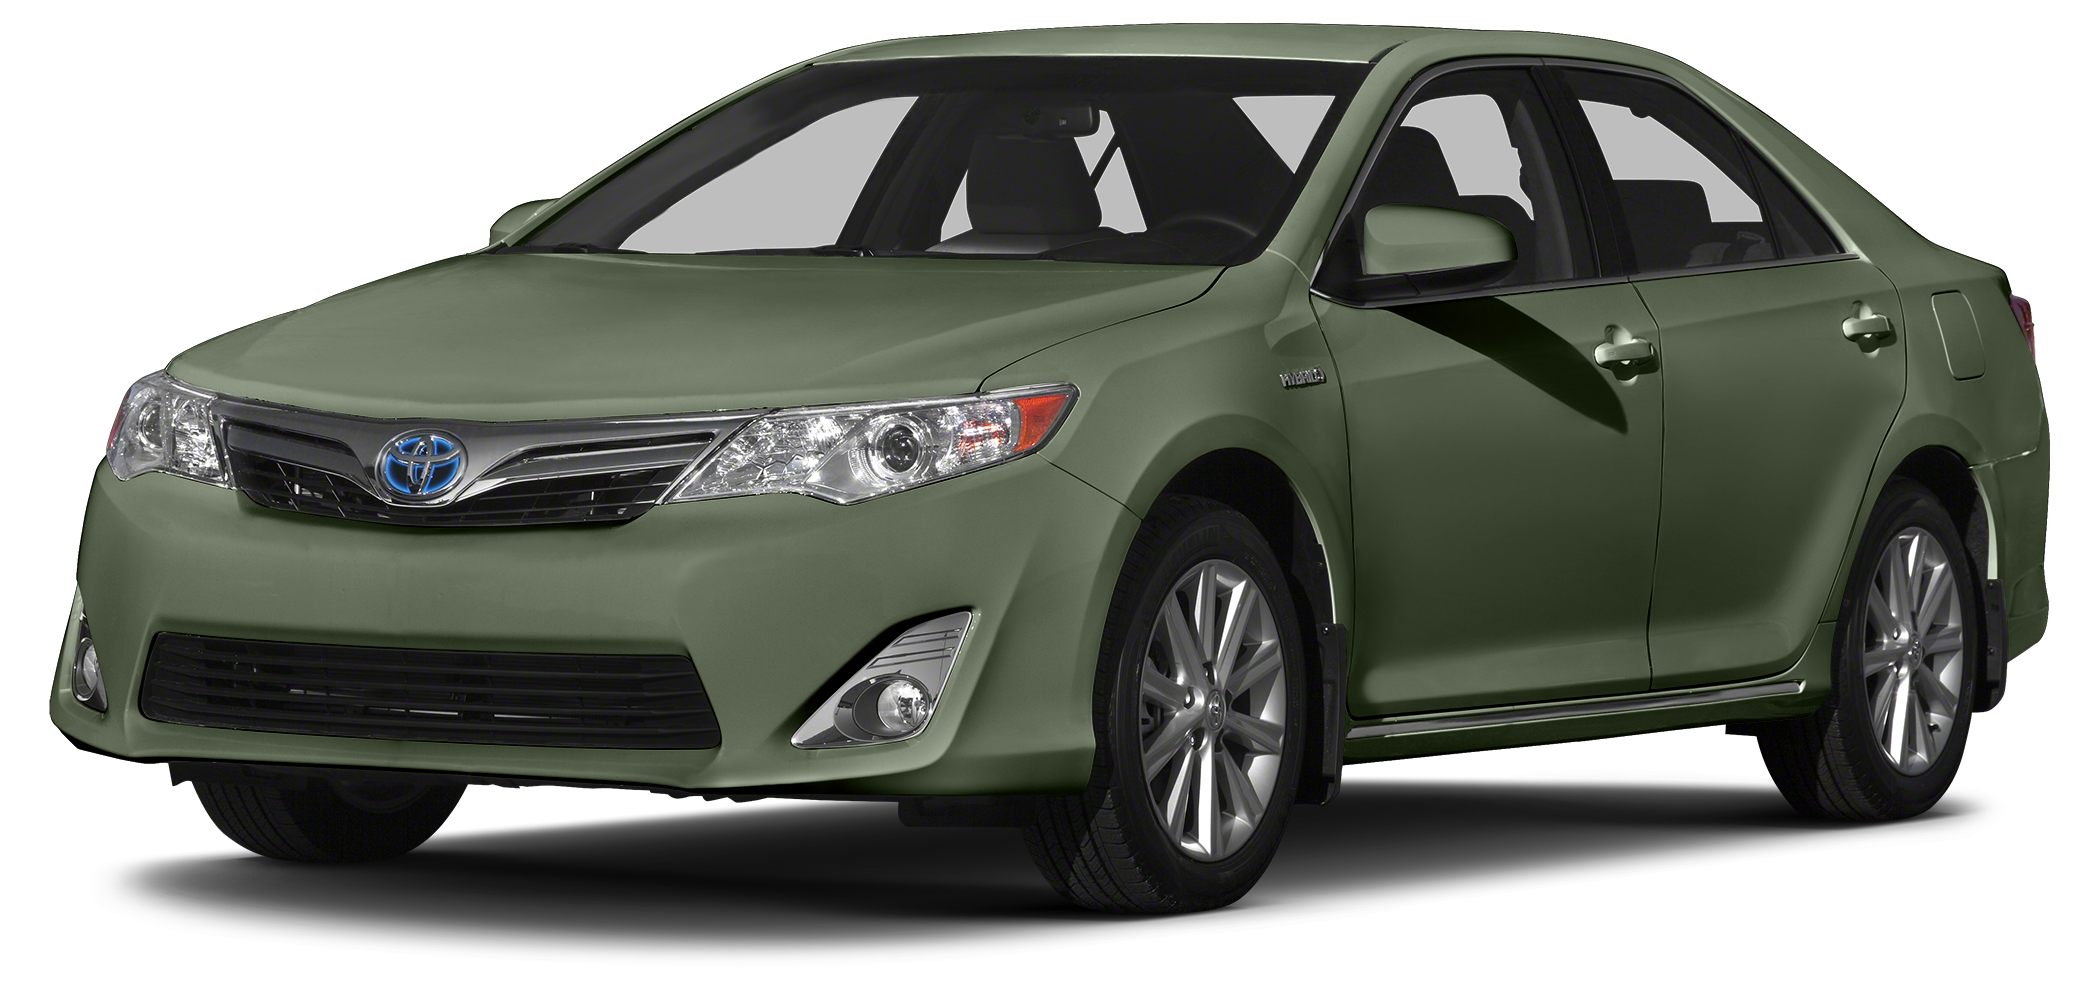 2014 Toyota Camry Hybrid XLE CARFAX 1-Owner GREAT MILES 23831 FUEL EFFICIENT 38 MPG Hwy40 MPG